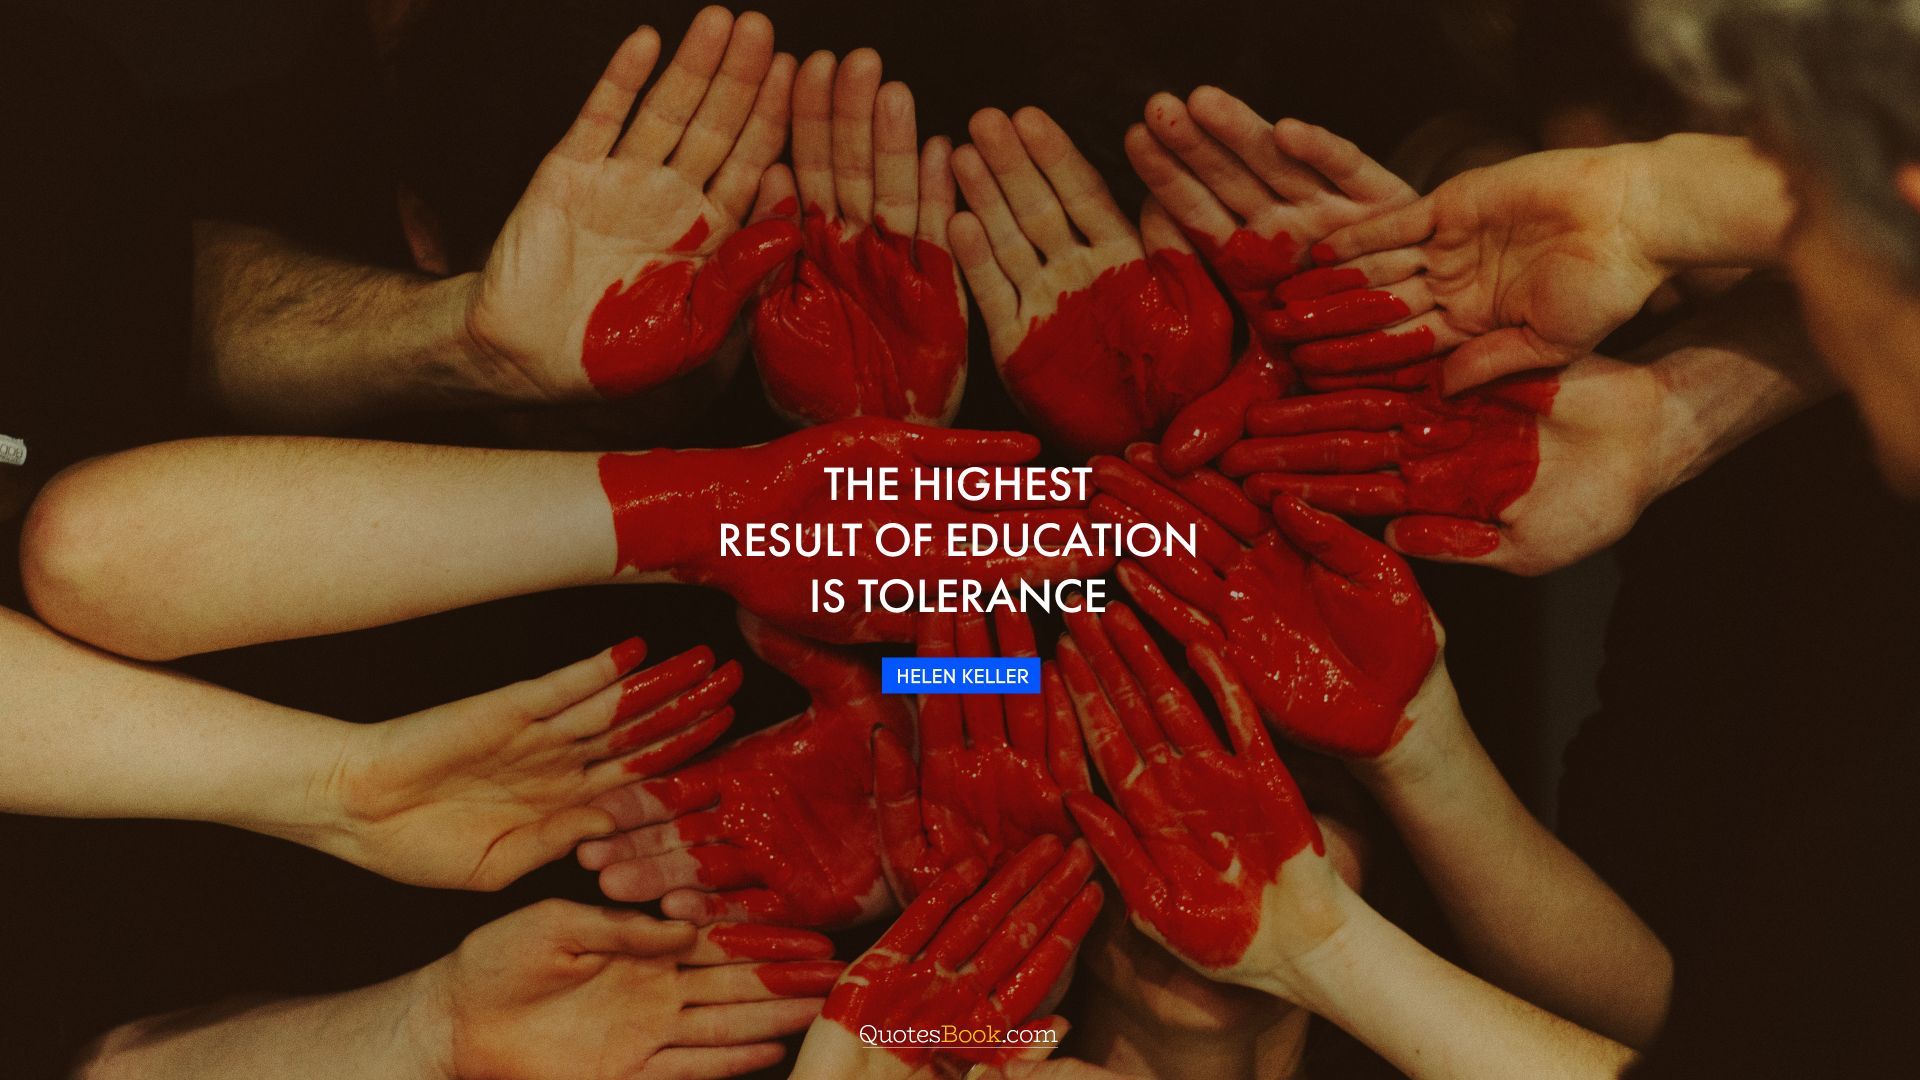 The highest result of education is tolerance. - Quote by Helen Keller